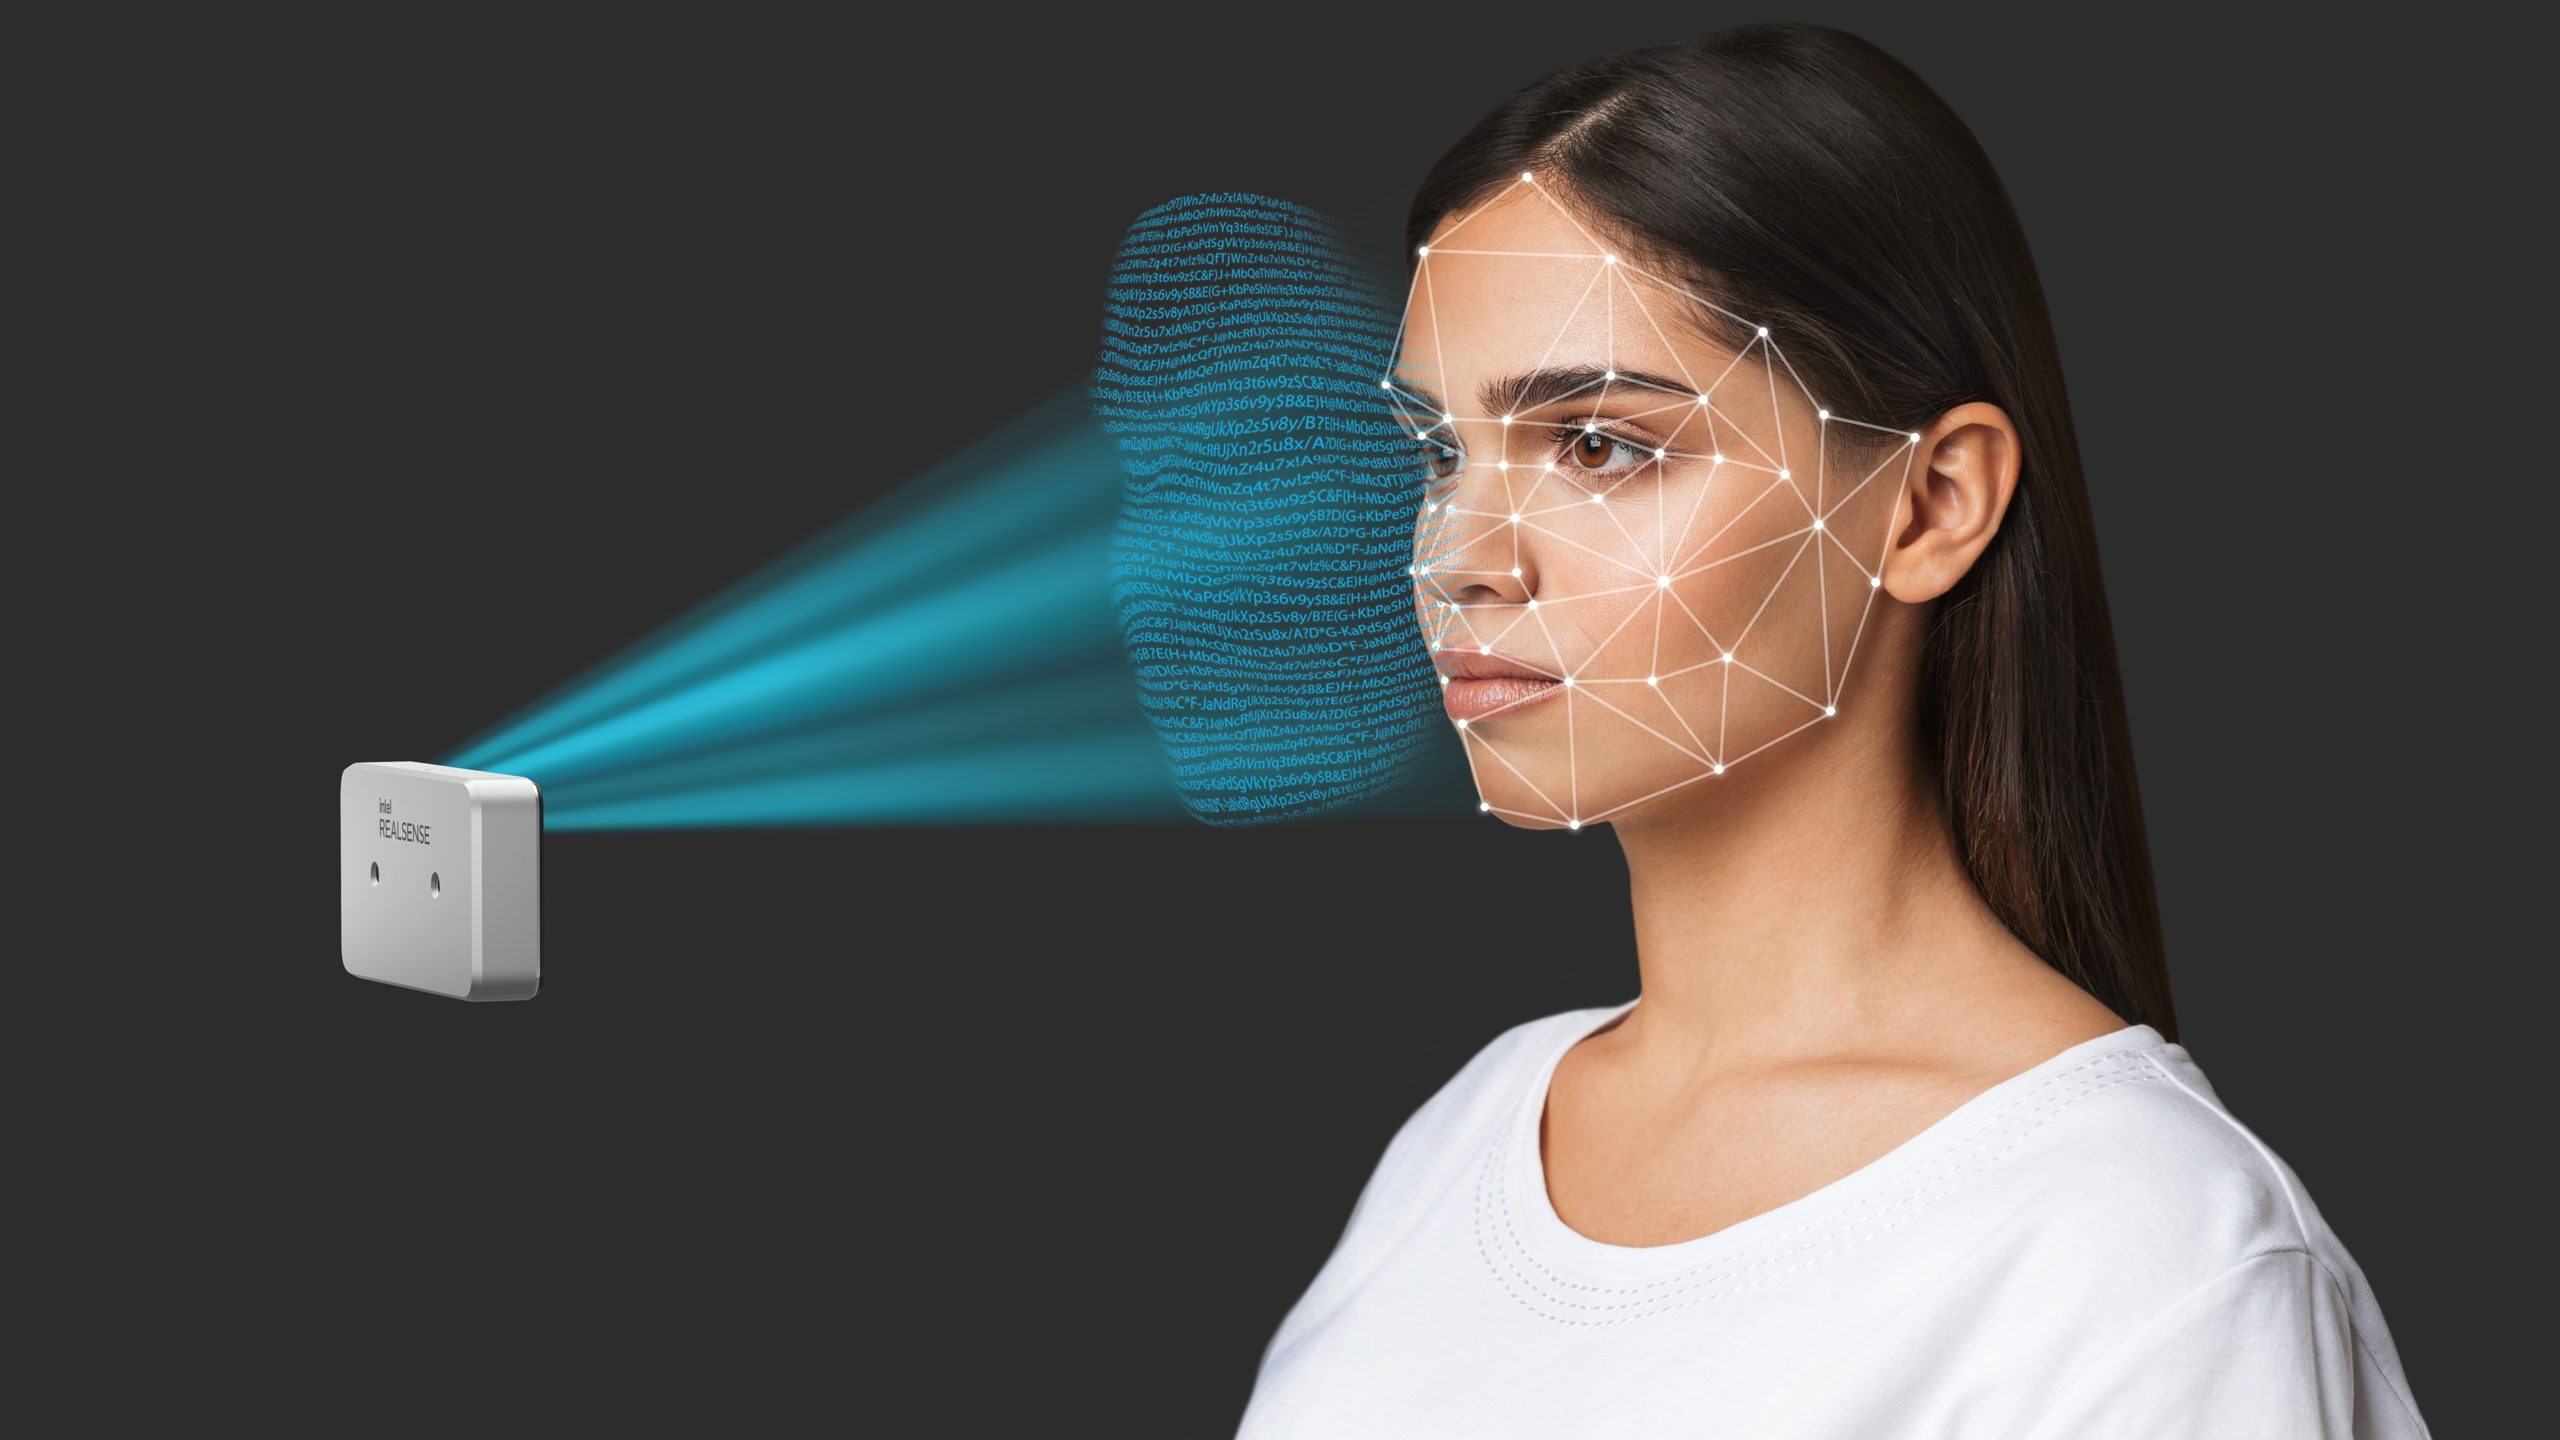 Intel introduces alternative Face ID like authentication called 'RealSense ID' for smart devices